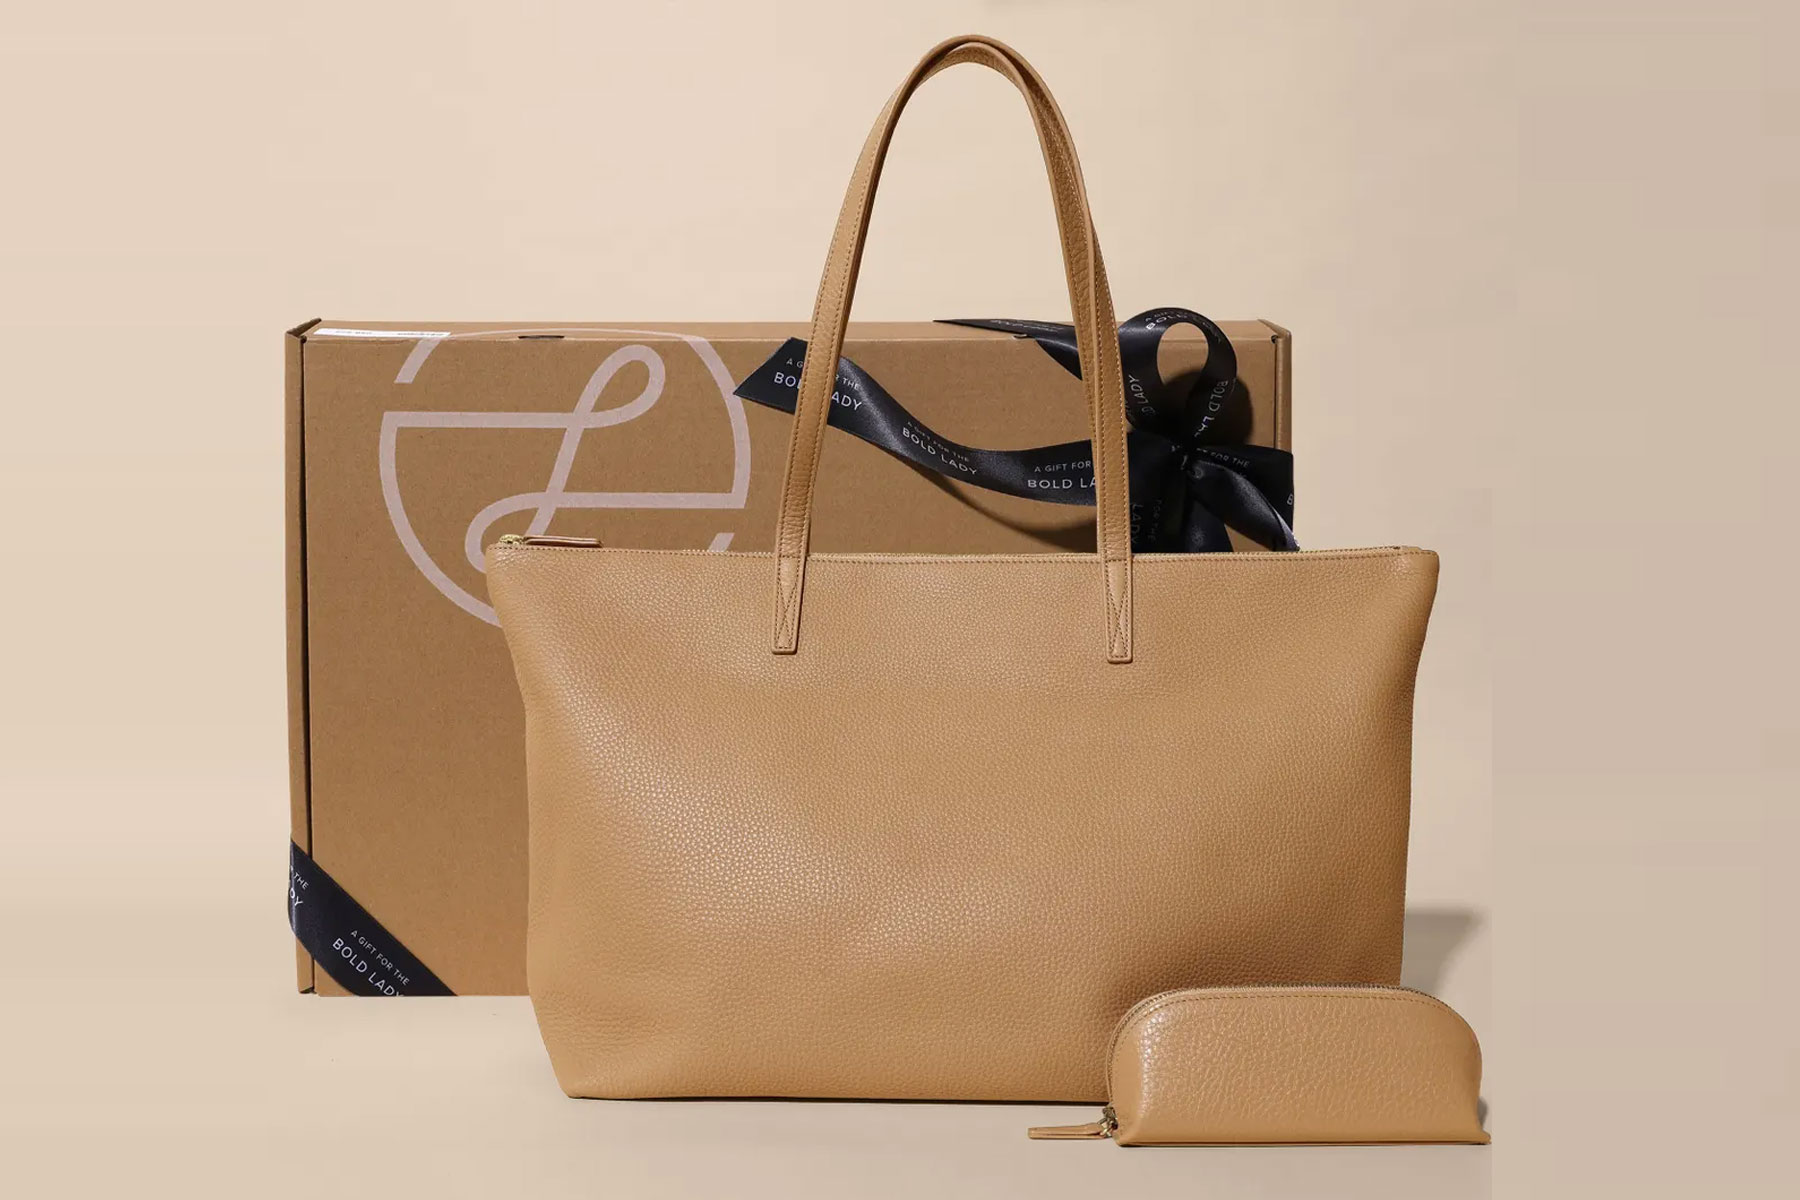 Leather tote and gift box